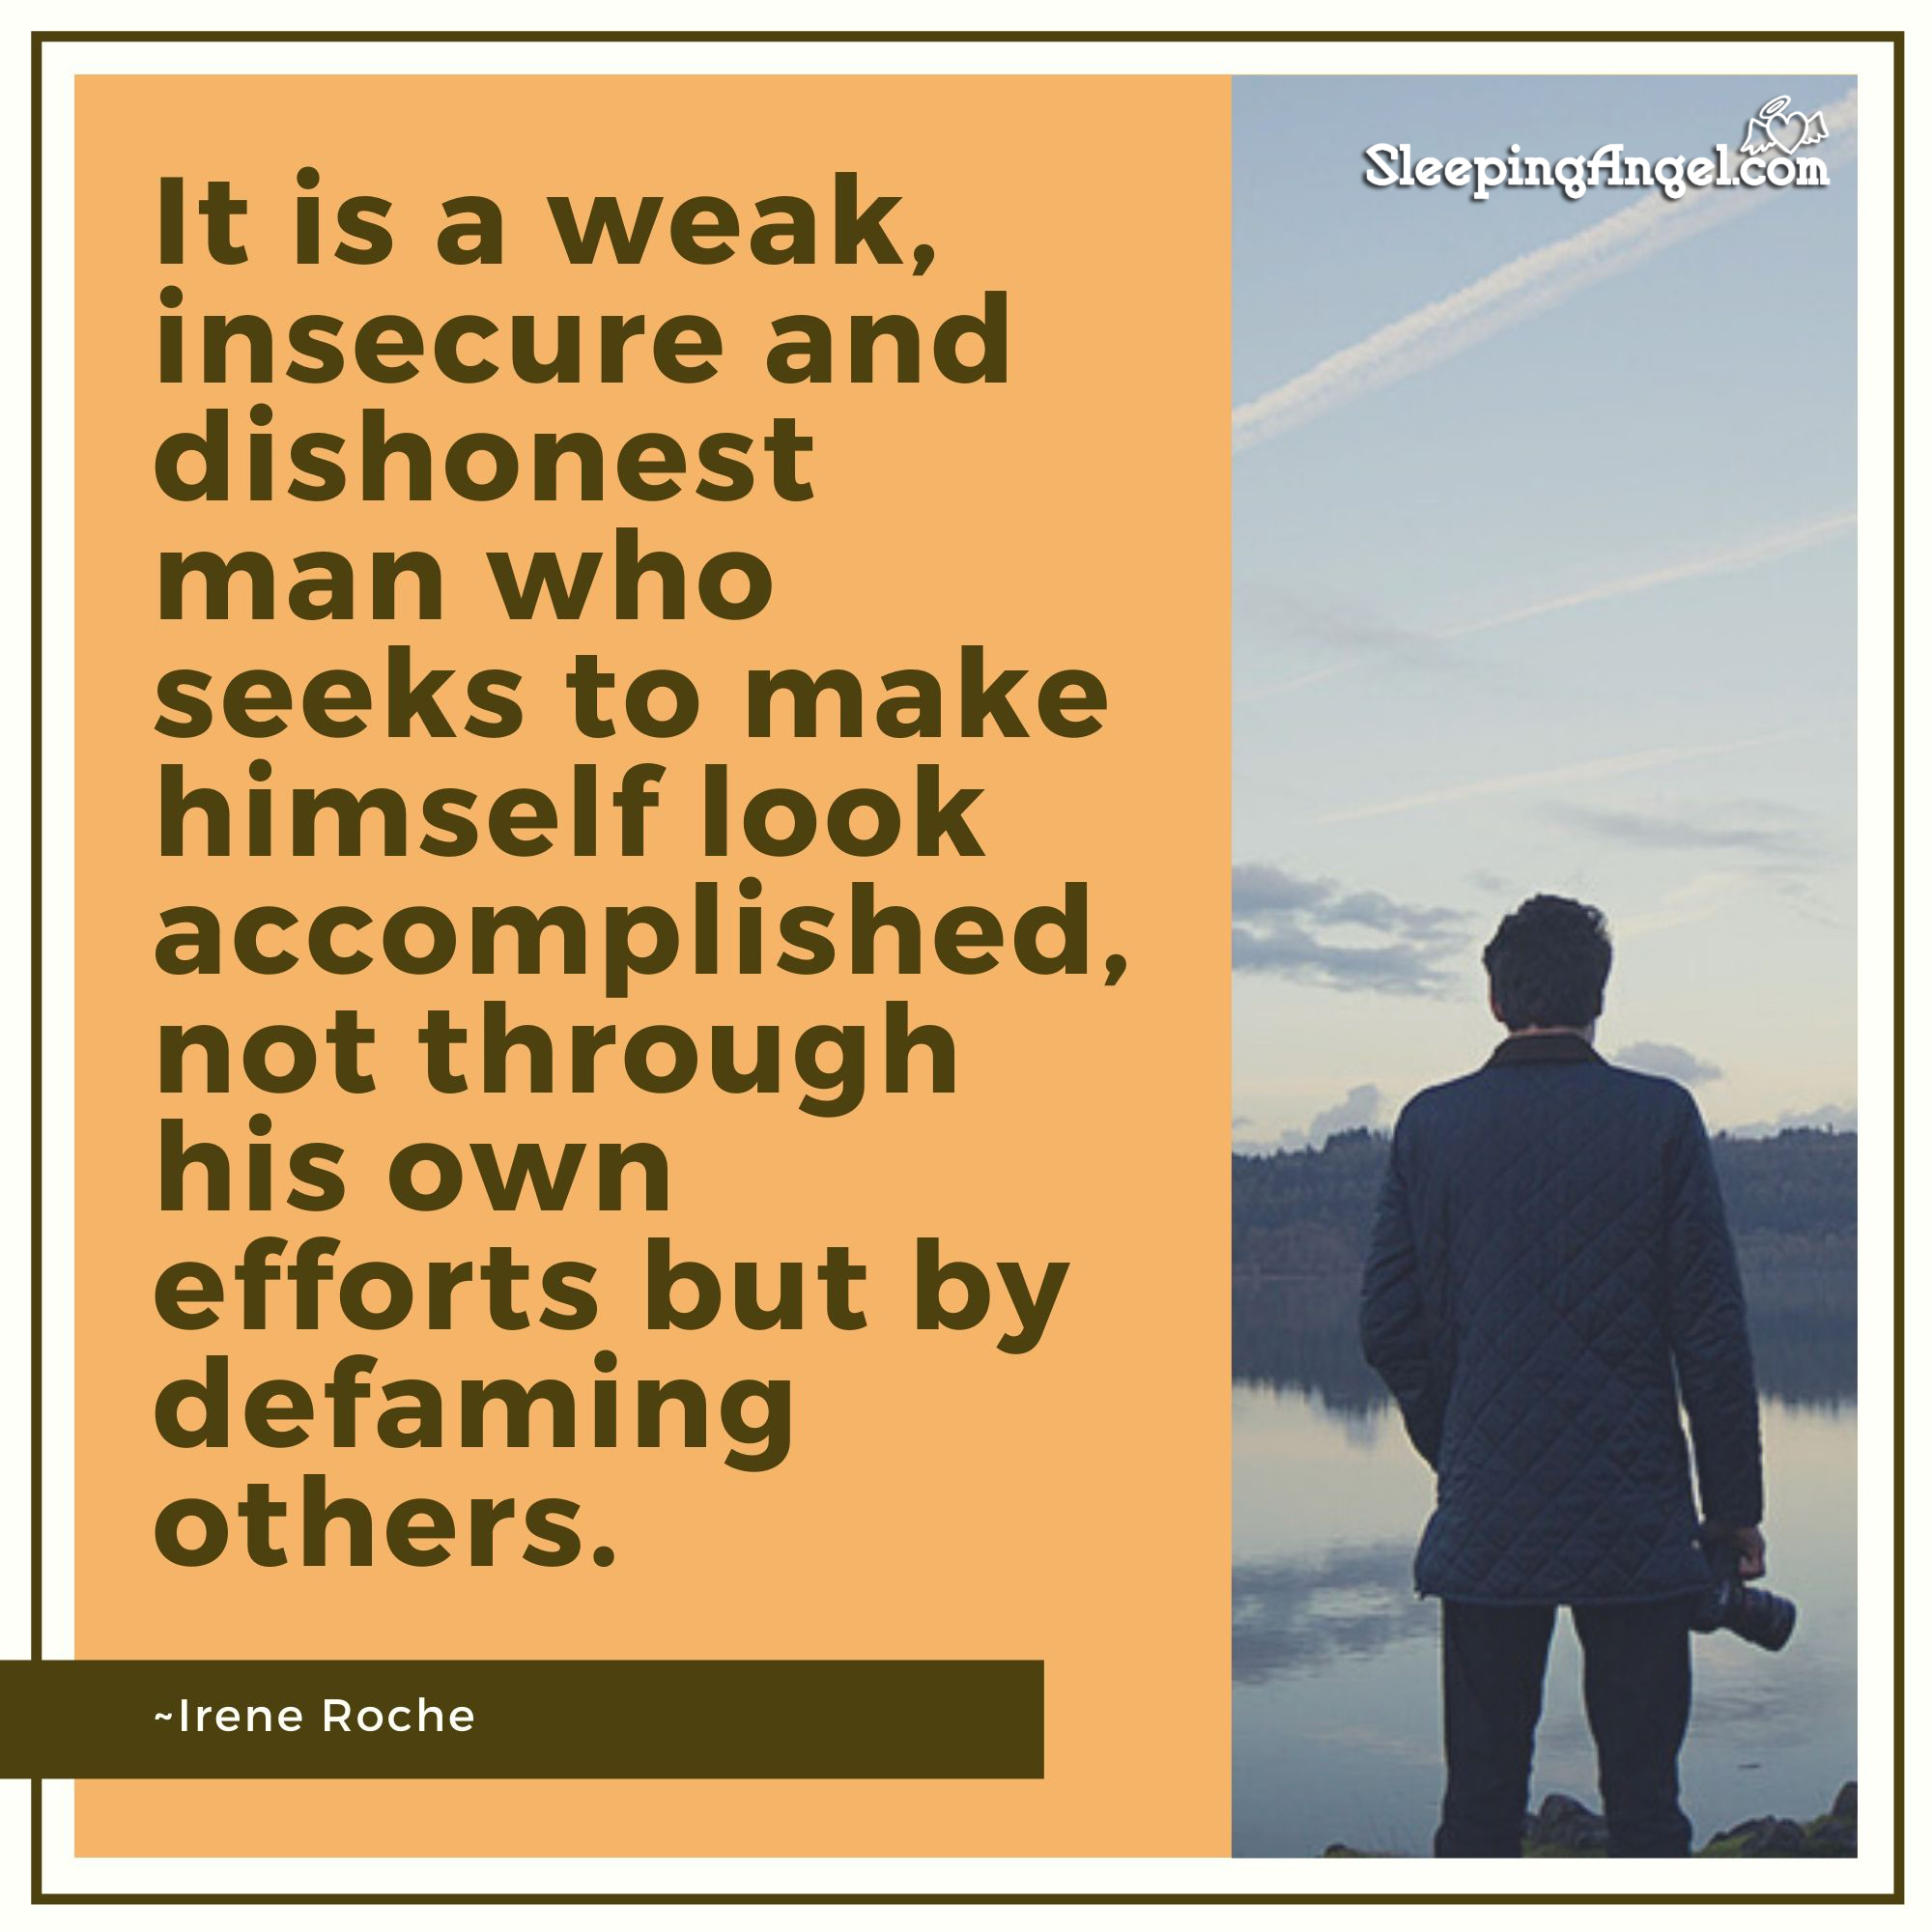 Defaming Others Quote